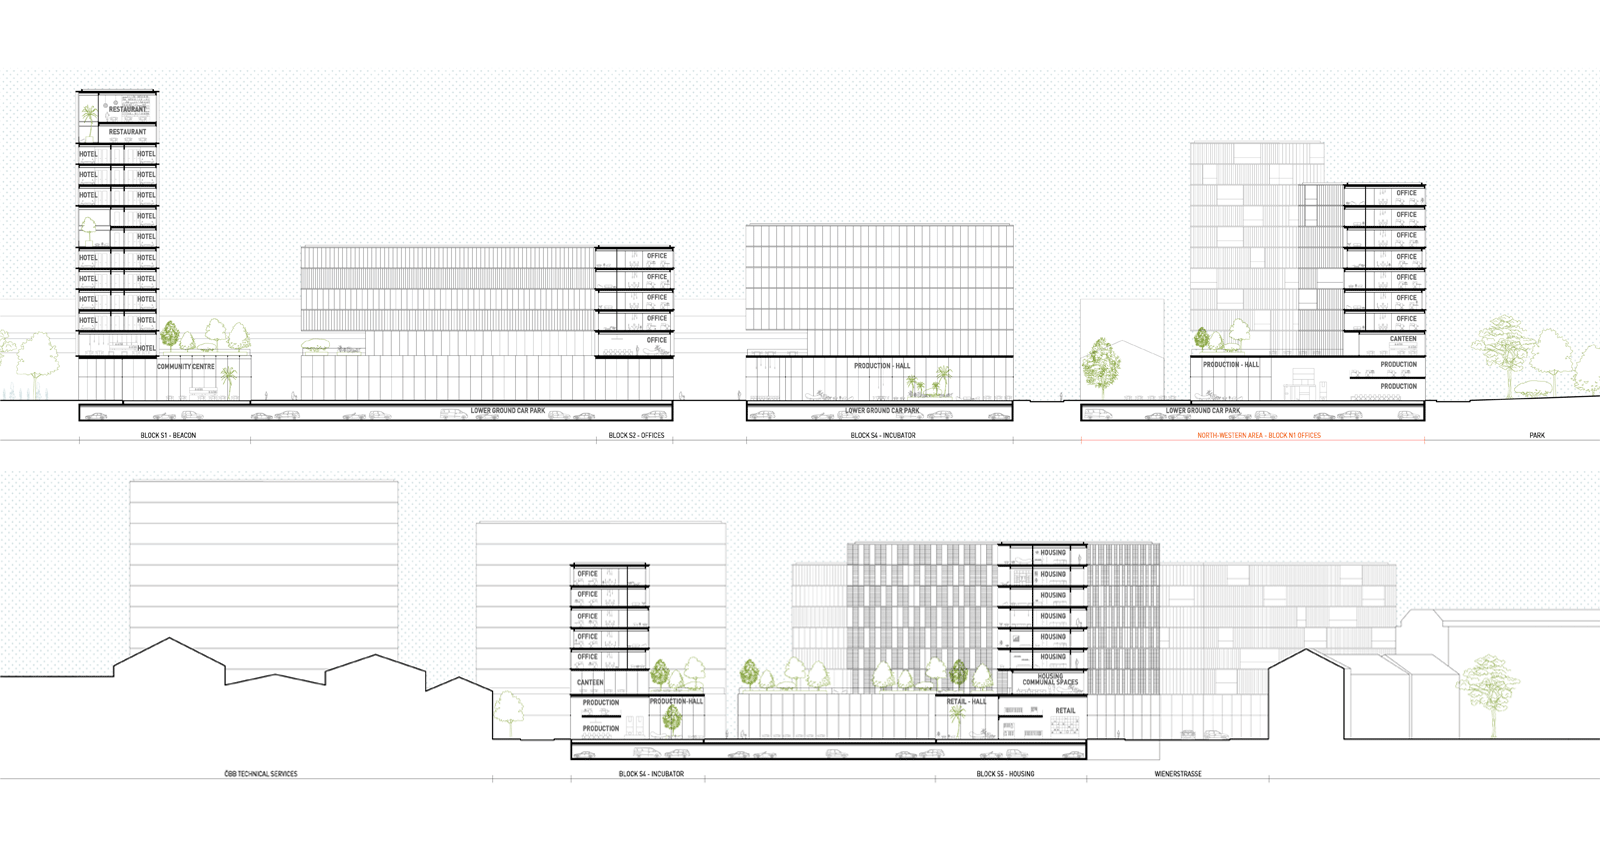 europan-14-fablinz-post-process-sections